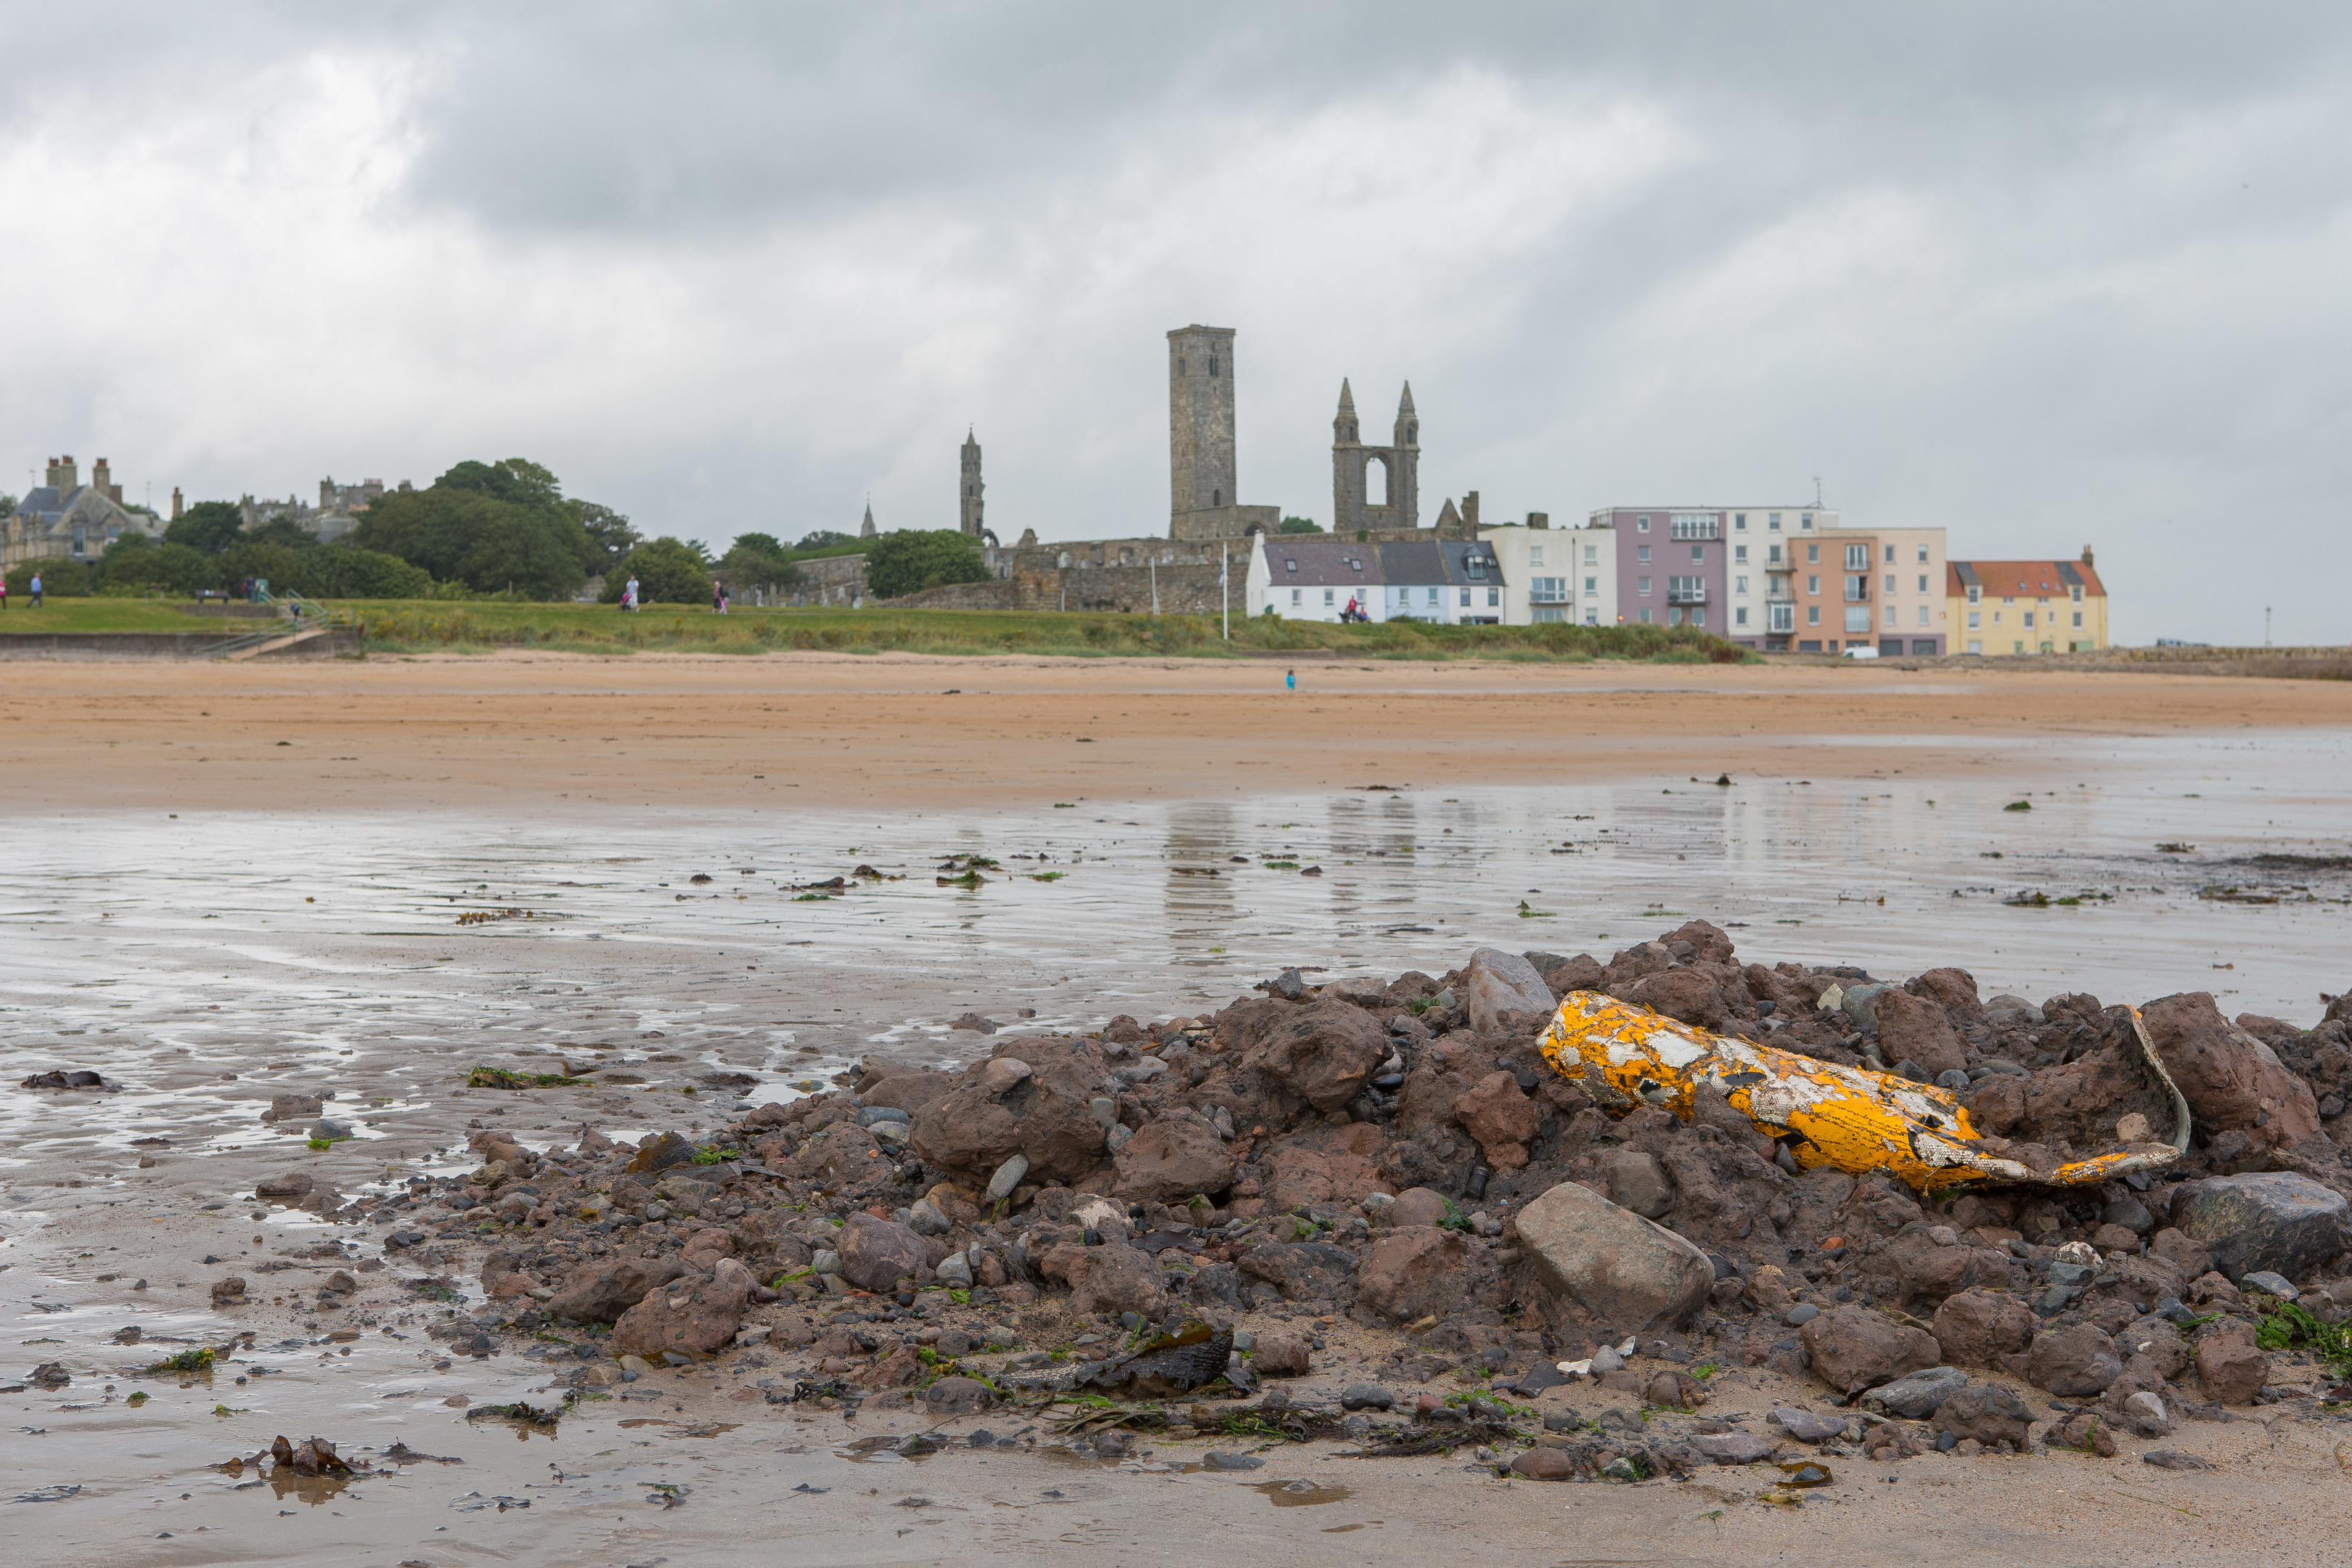 Waste was dumped on the East Sands.